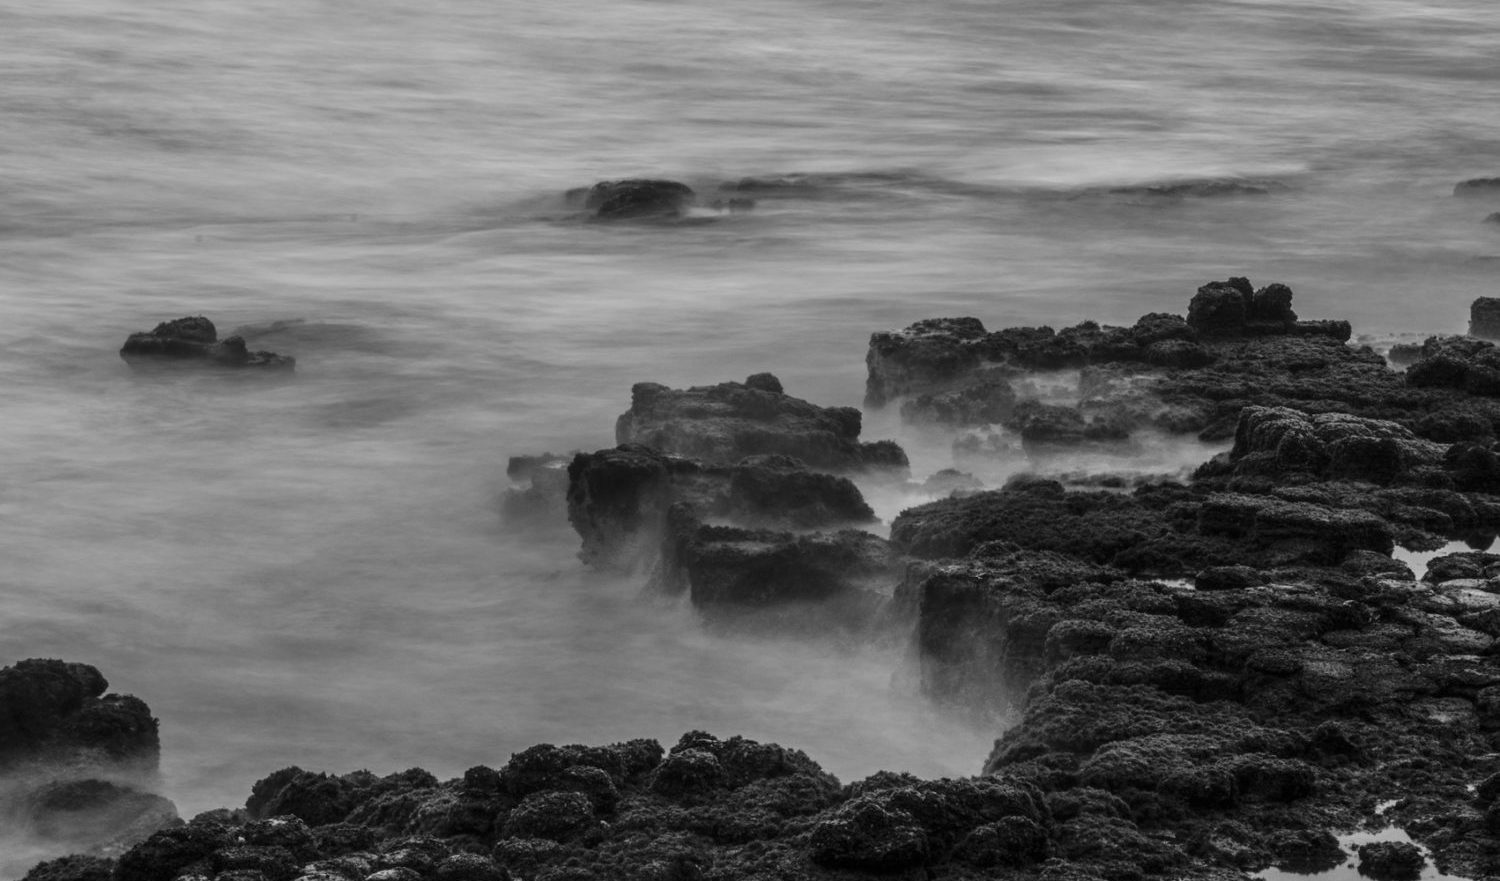 A long exposure black and white photo of blurred ocean waves splashing against lava rock on the coast of Maui, Hawaii